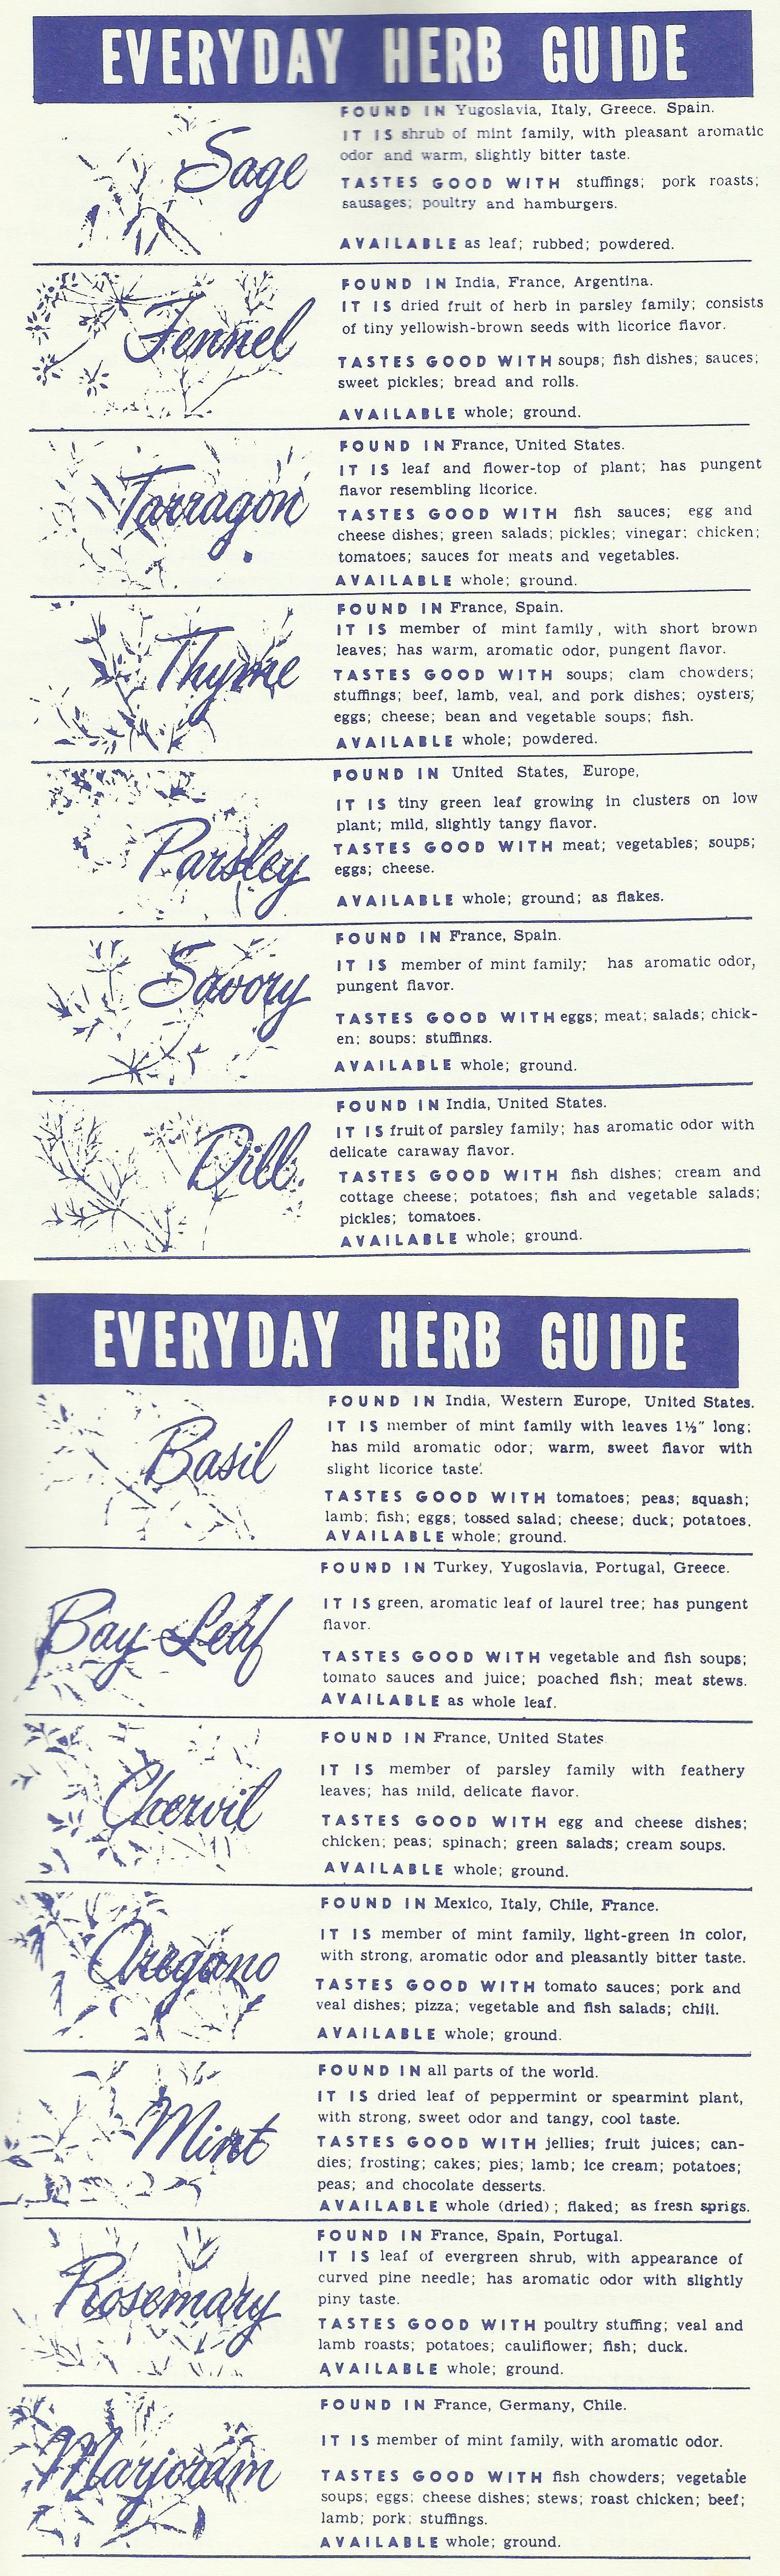 Everyday Herb Guide